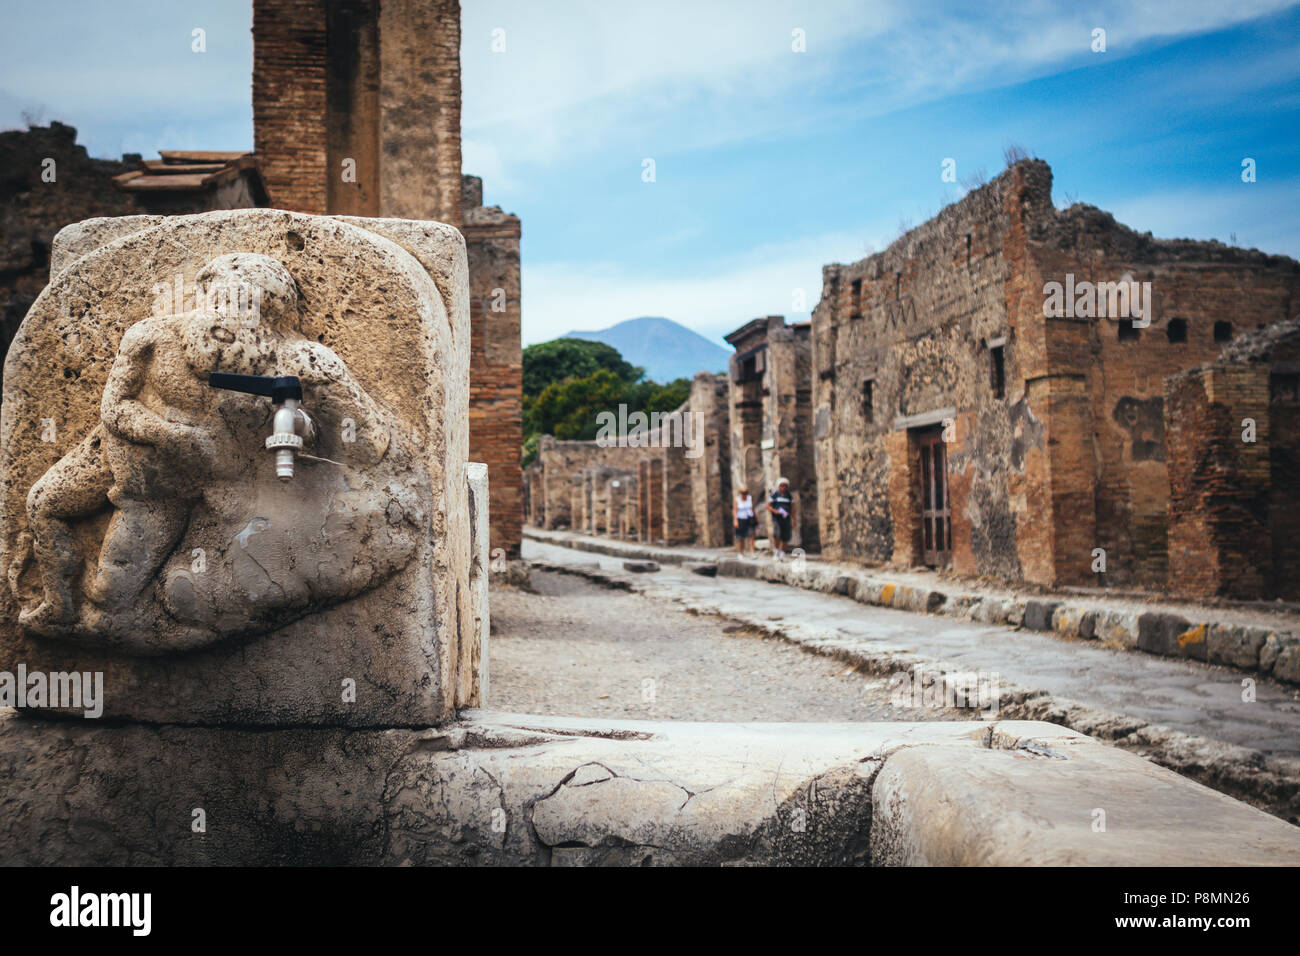 public fountain with hercules that kills the lion in the streets of Pompeii - Stock Image